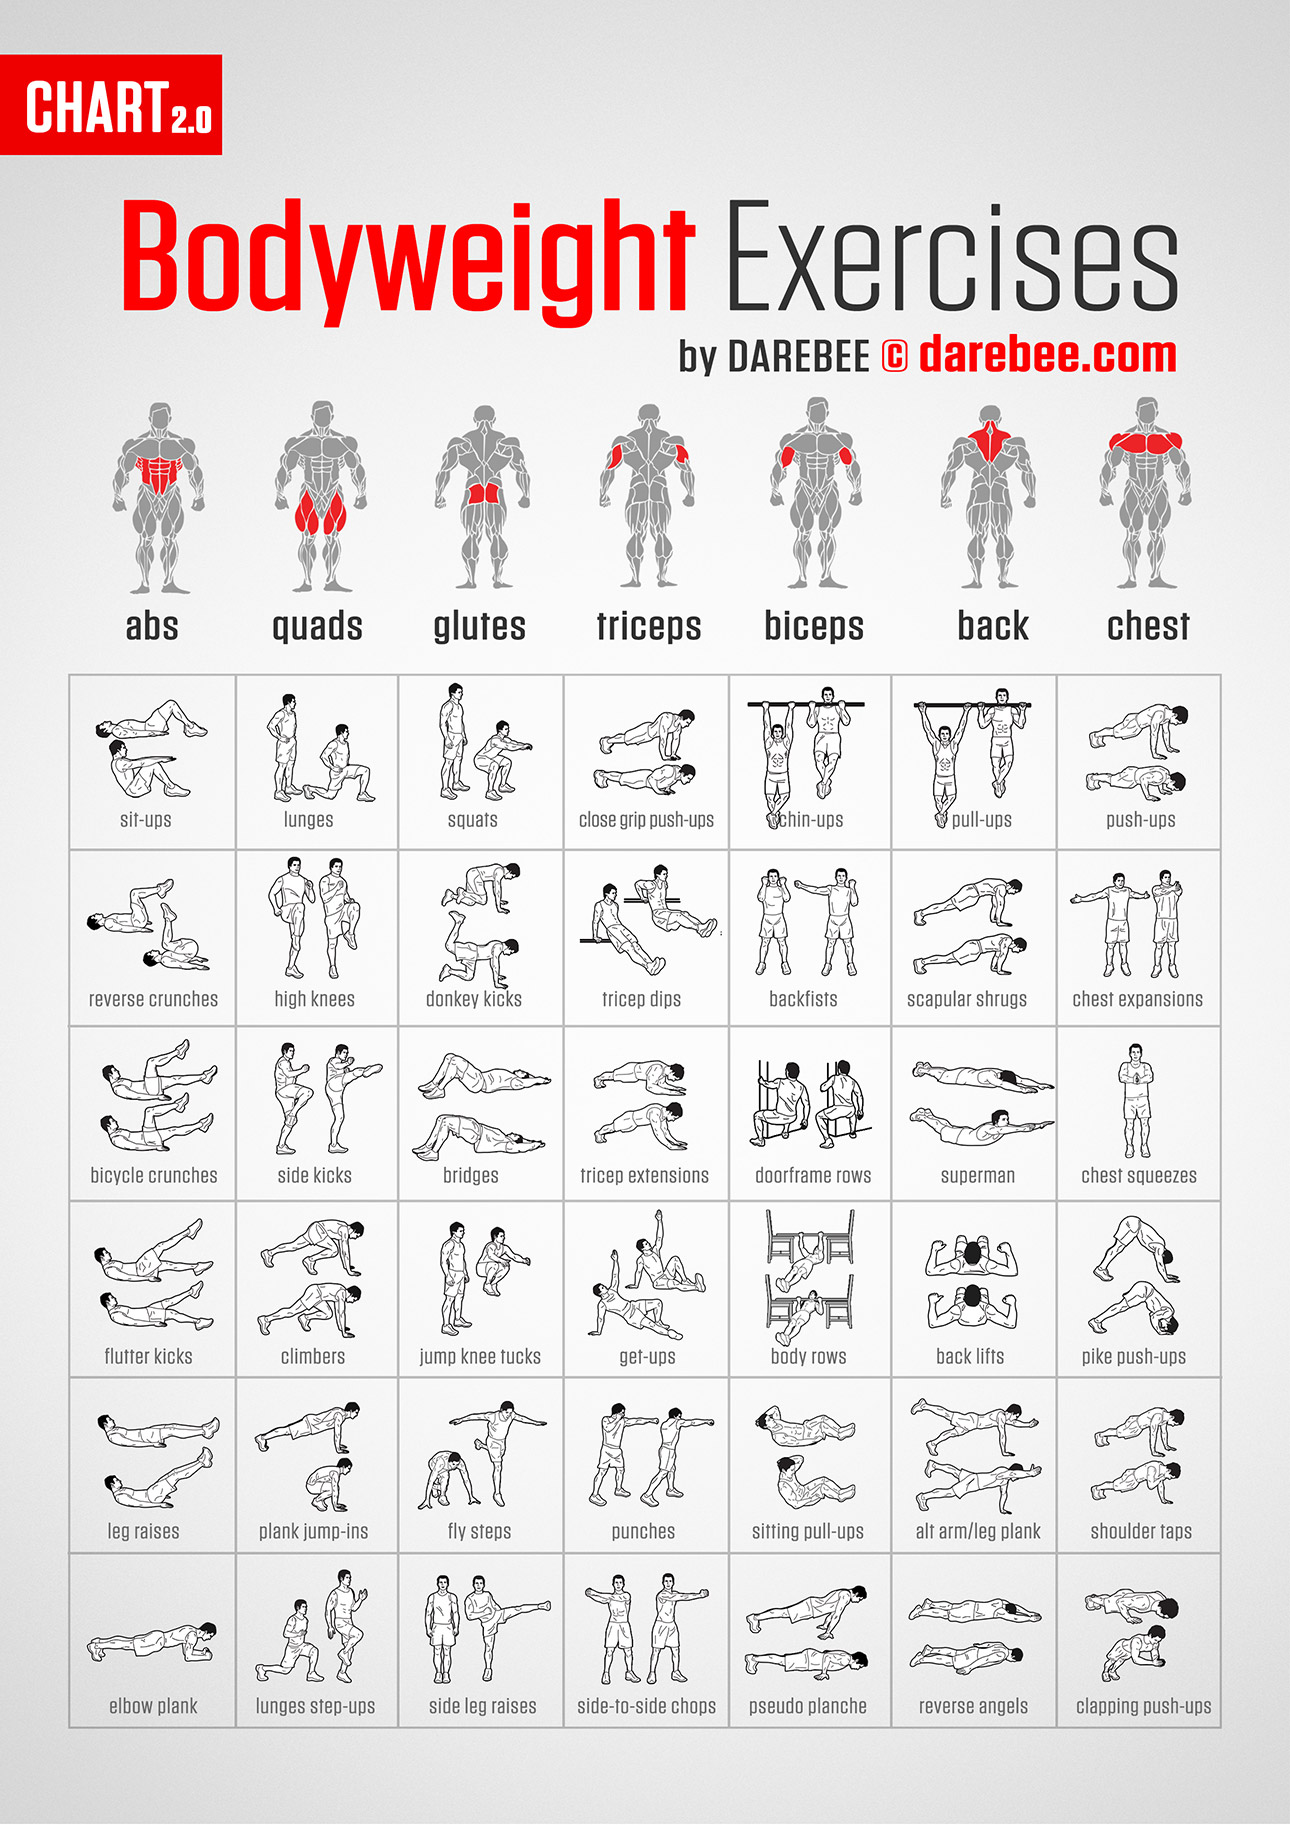 awesome chart for finding bodyweight exercises for every body part